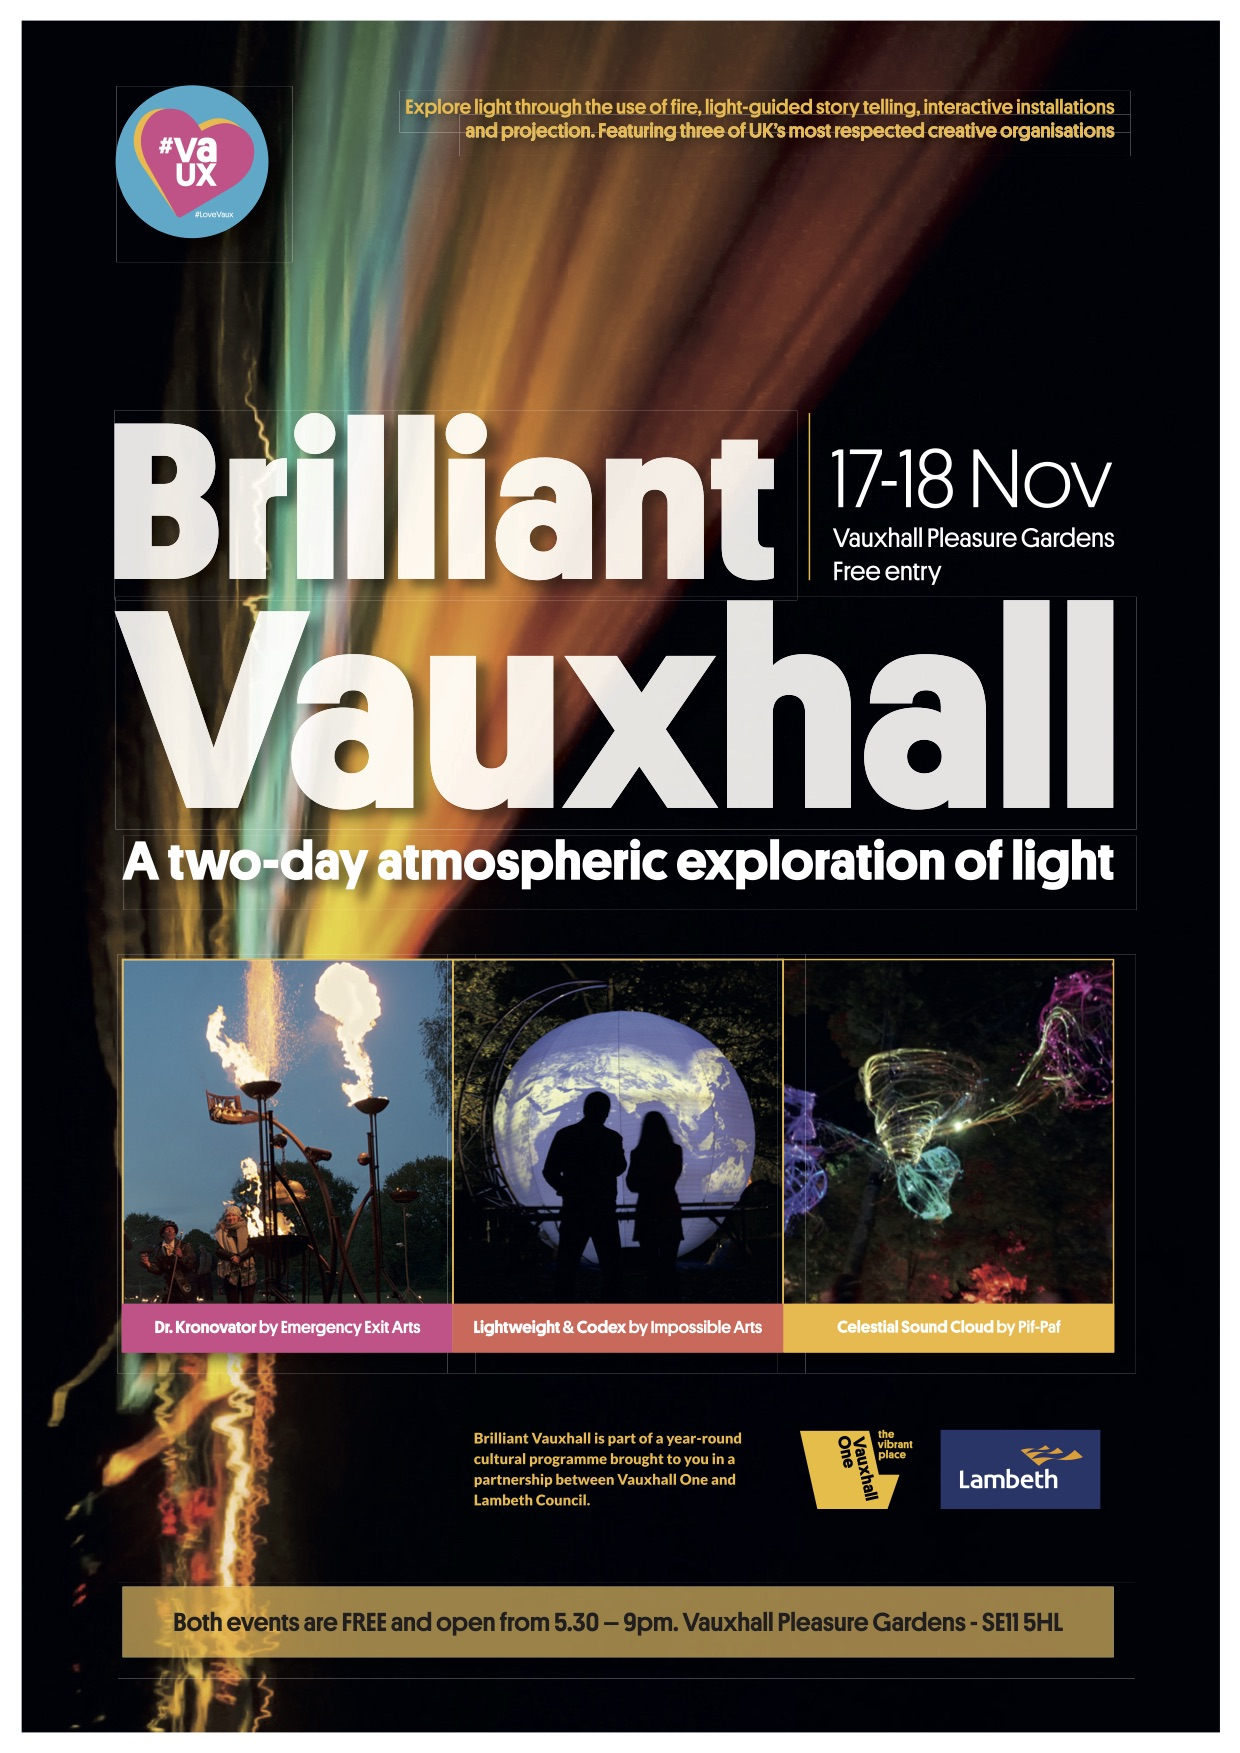 brilliant-vauxhall-light-poster-repro-A4-final-1.jpg